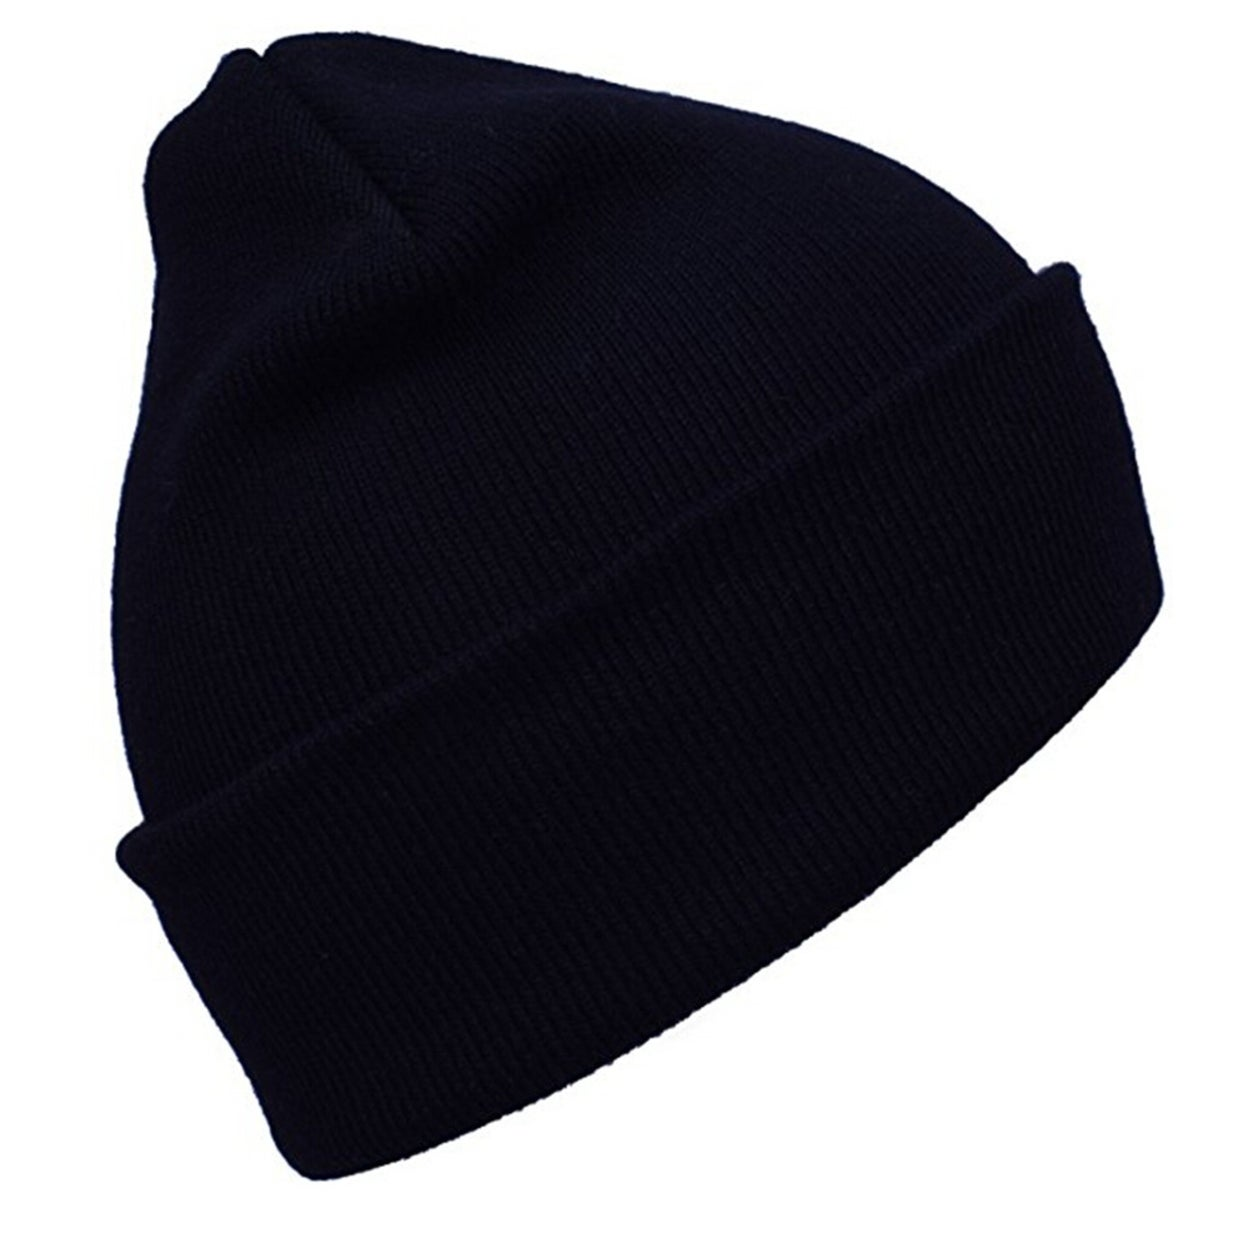 abf0fad8b68 Shop Black Cuff Warm Winter Hat Knit Plain Skull Beanie Toboggan Knit Cap  Unisex - On Sale - Ships To Canada - Overstock - 23172285